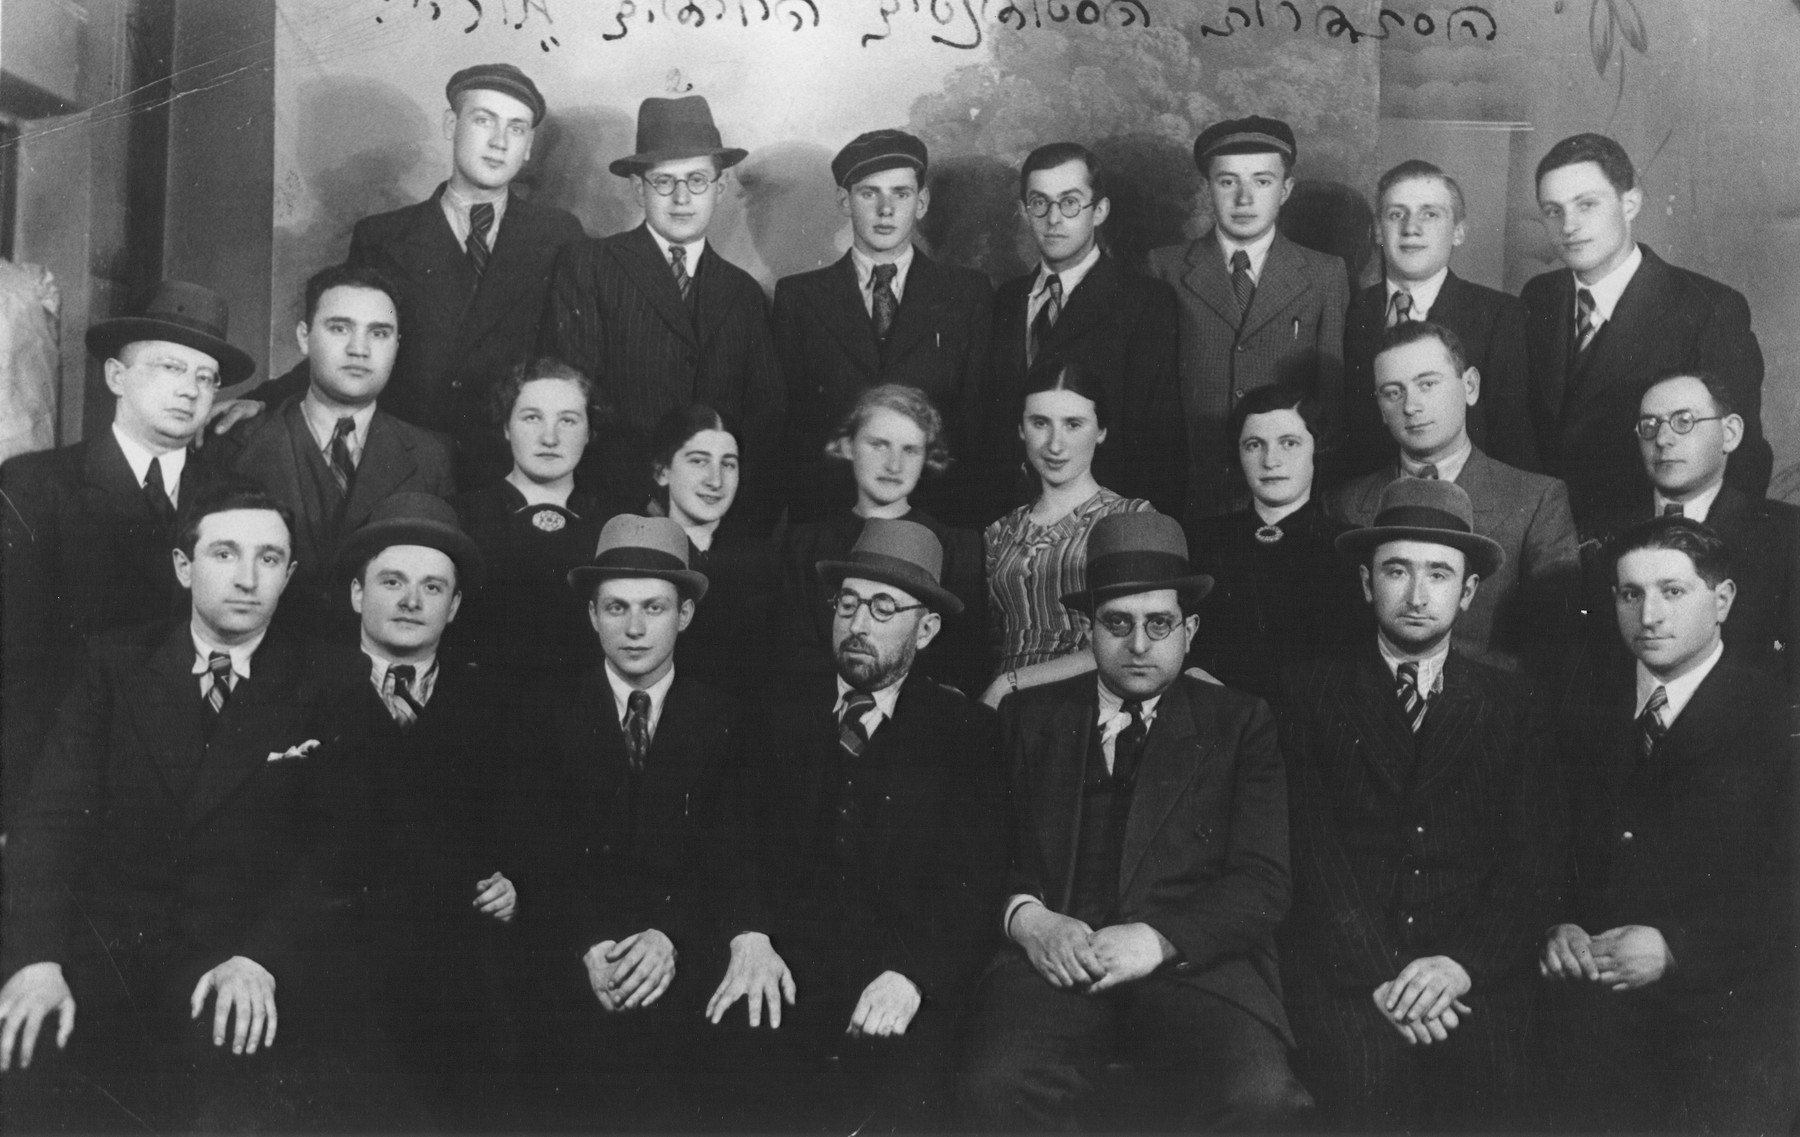 Group portrait of members of the Moriah Jewish students association at the Vytautus University in Kaunas.  Seated in the first row, third from the right is Shalom Tzvi Rachokovsky.